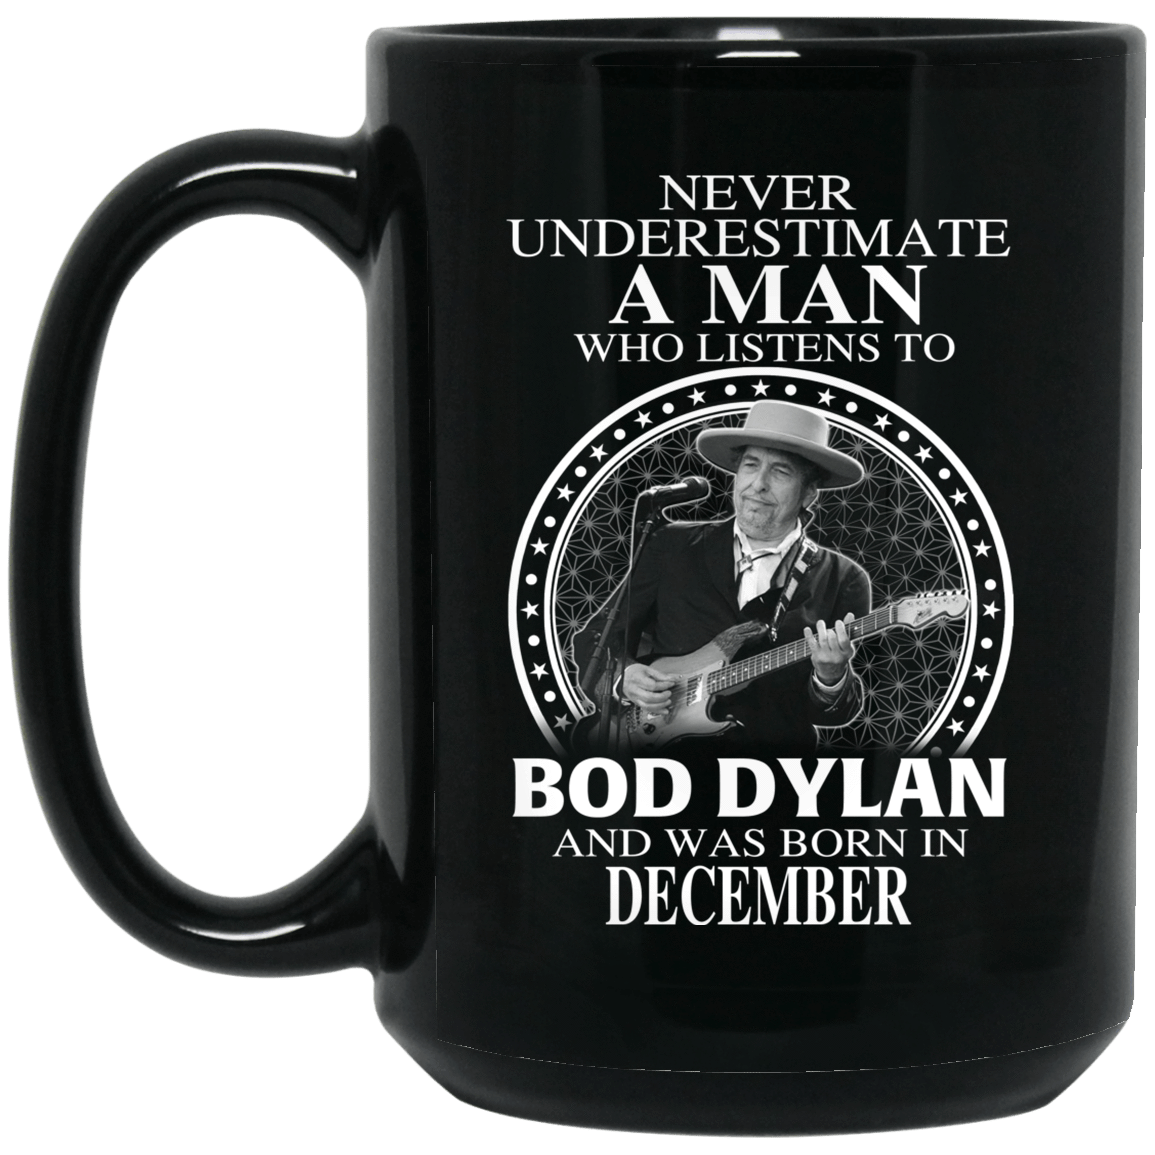 A Man Who Listens To Bob Dylan And Was Born In December Mug 1066-10182-76153612-49311 - Tee Ript